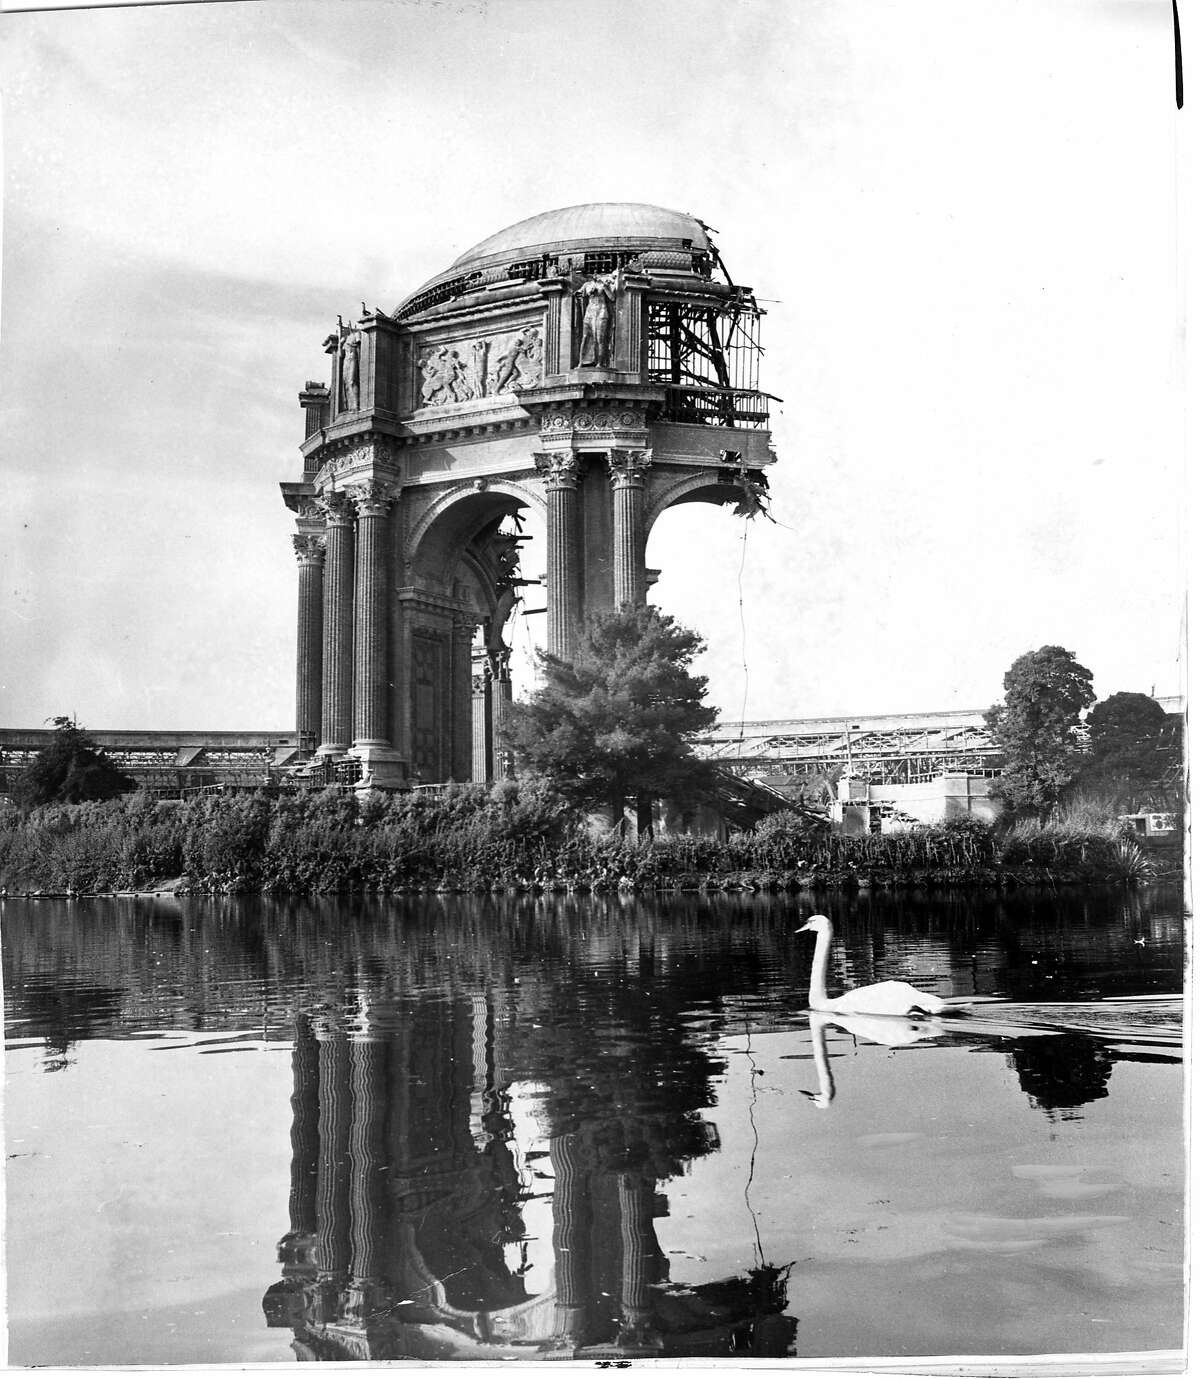 Saving the Palace of Fine Arts meant partially demolishing it and then reconstruction with better materials. This photo ran Oct. 18, 1964.